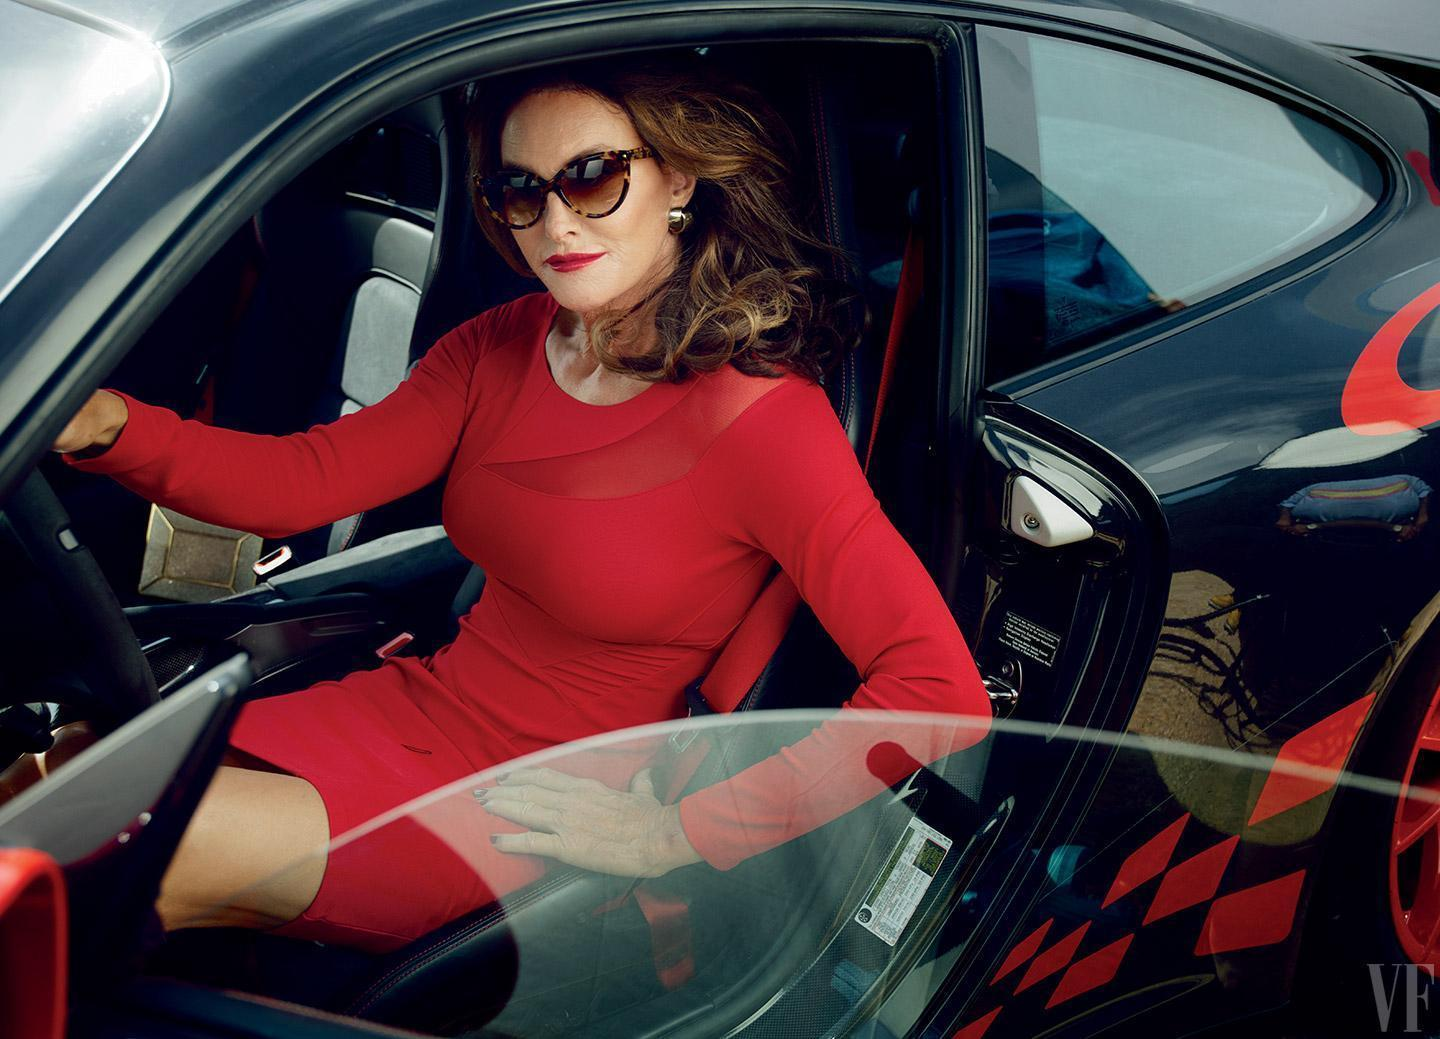 Fashion's Already in Love With Caitlyn Jenner